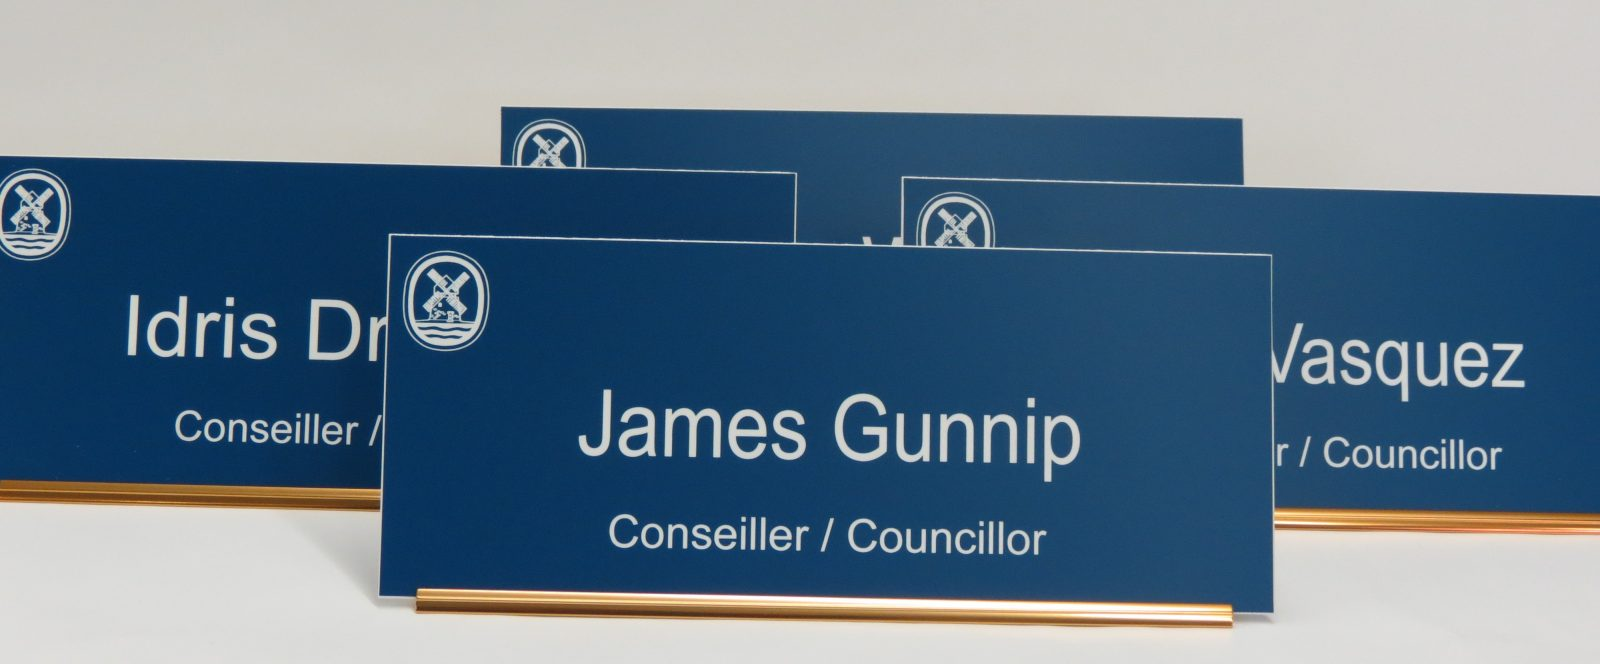 Engraved Desk Nameplates